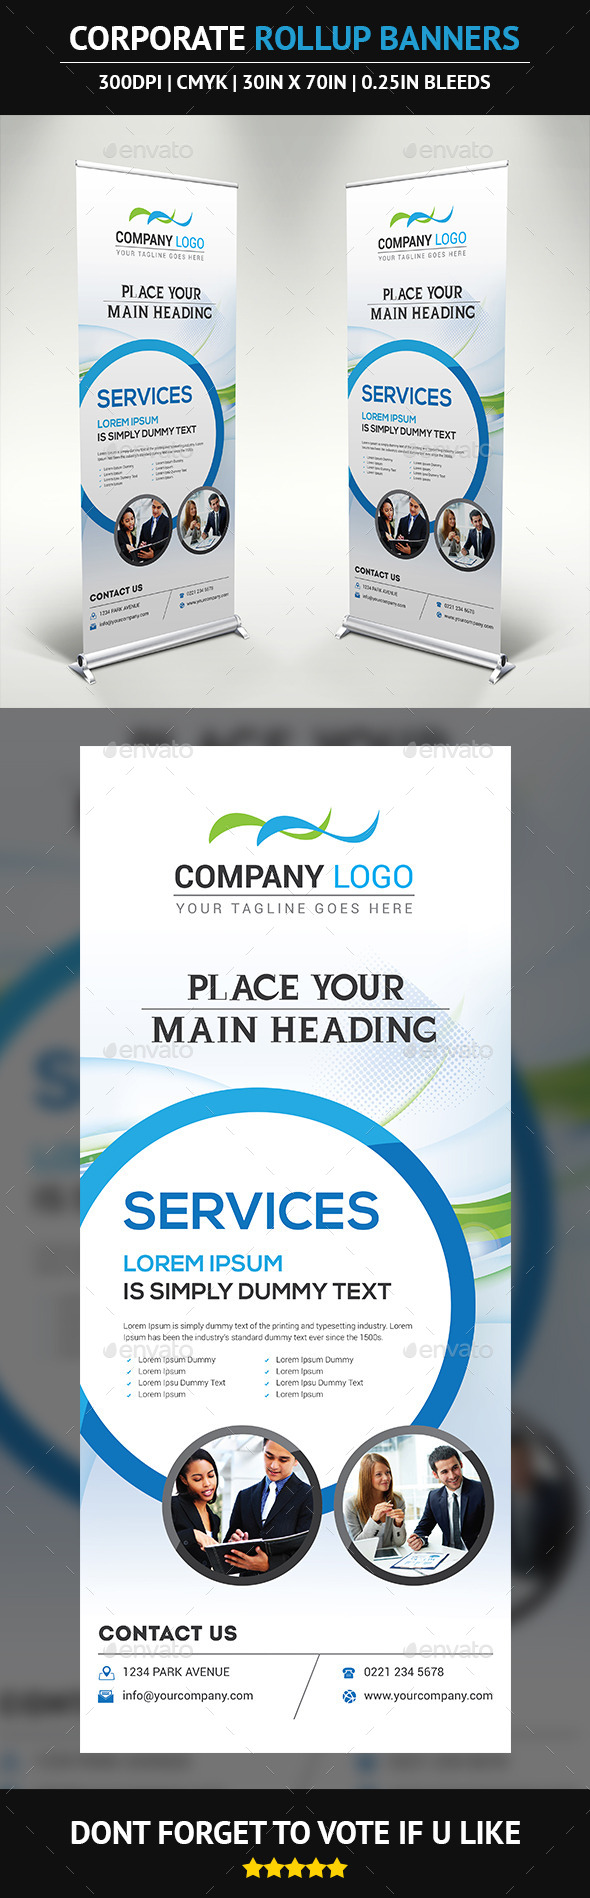 GraphicRiver Corporate Rollup Banner 9975544